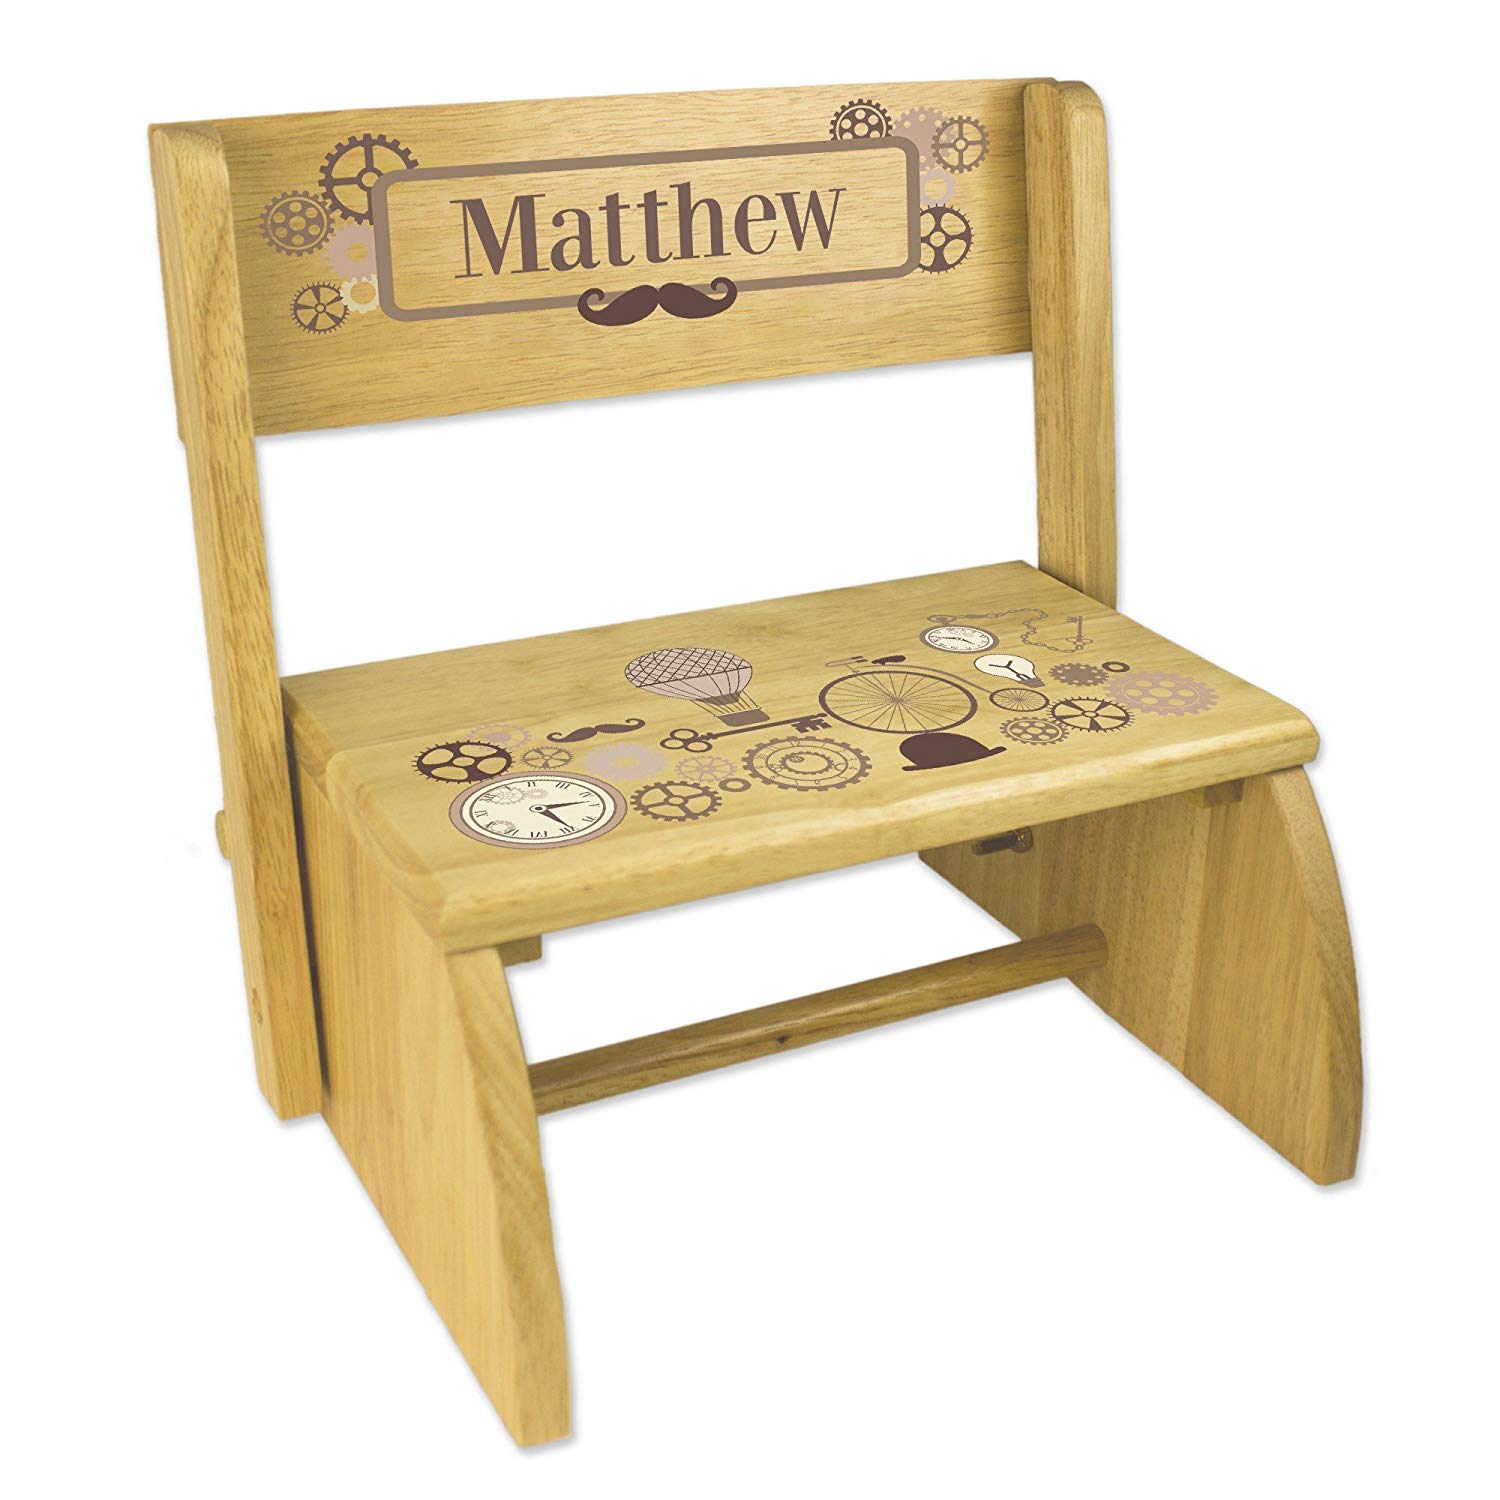 Personalized Steampunk Natural Wooden Folding Stool and Seat